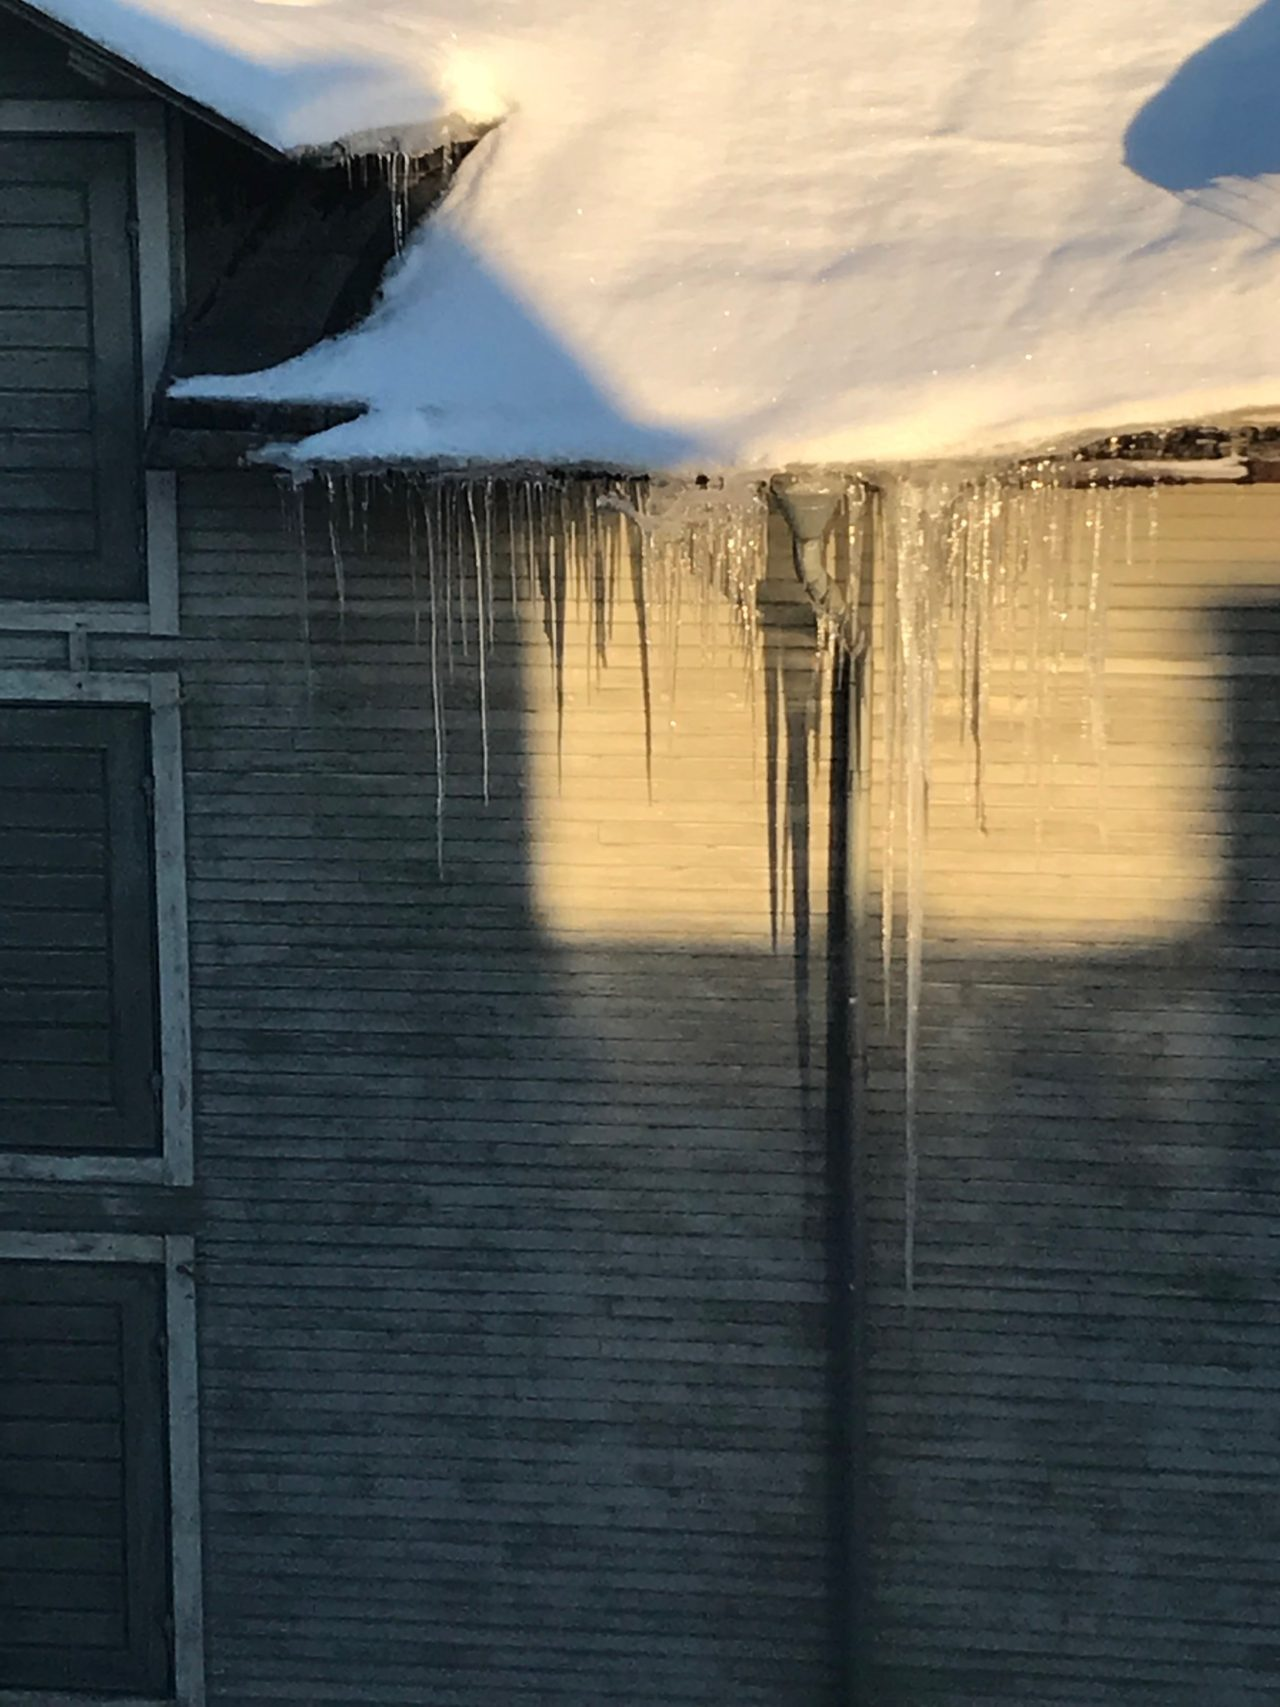 Roof With Snow And Icicles Hanging Down From The Gutter